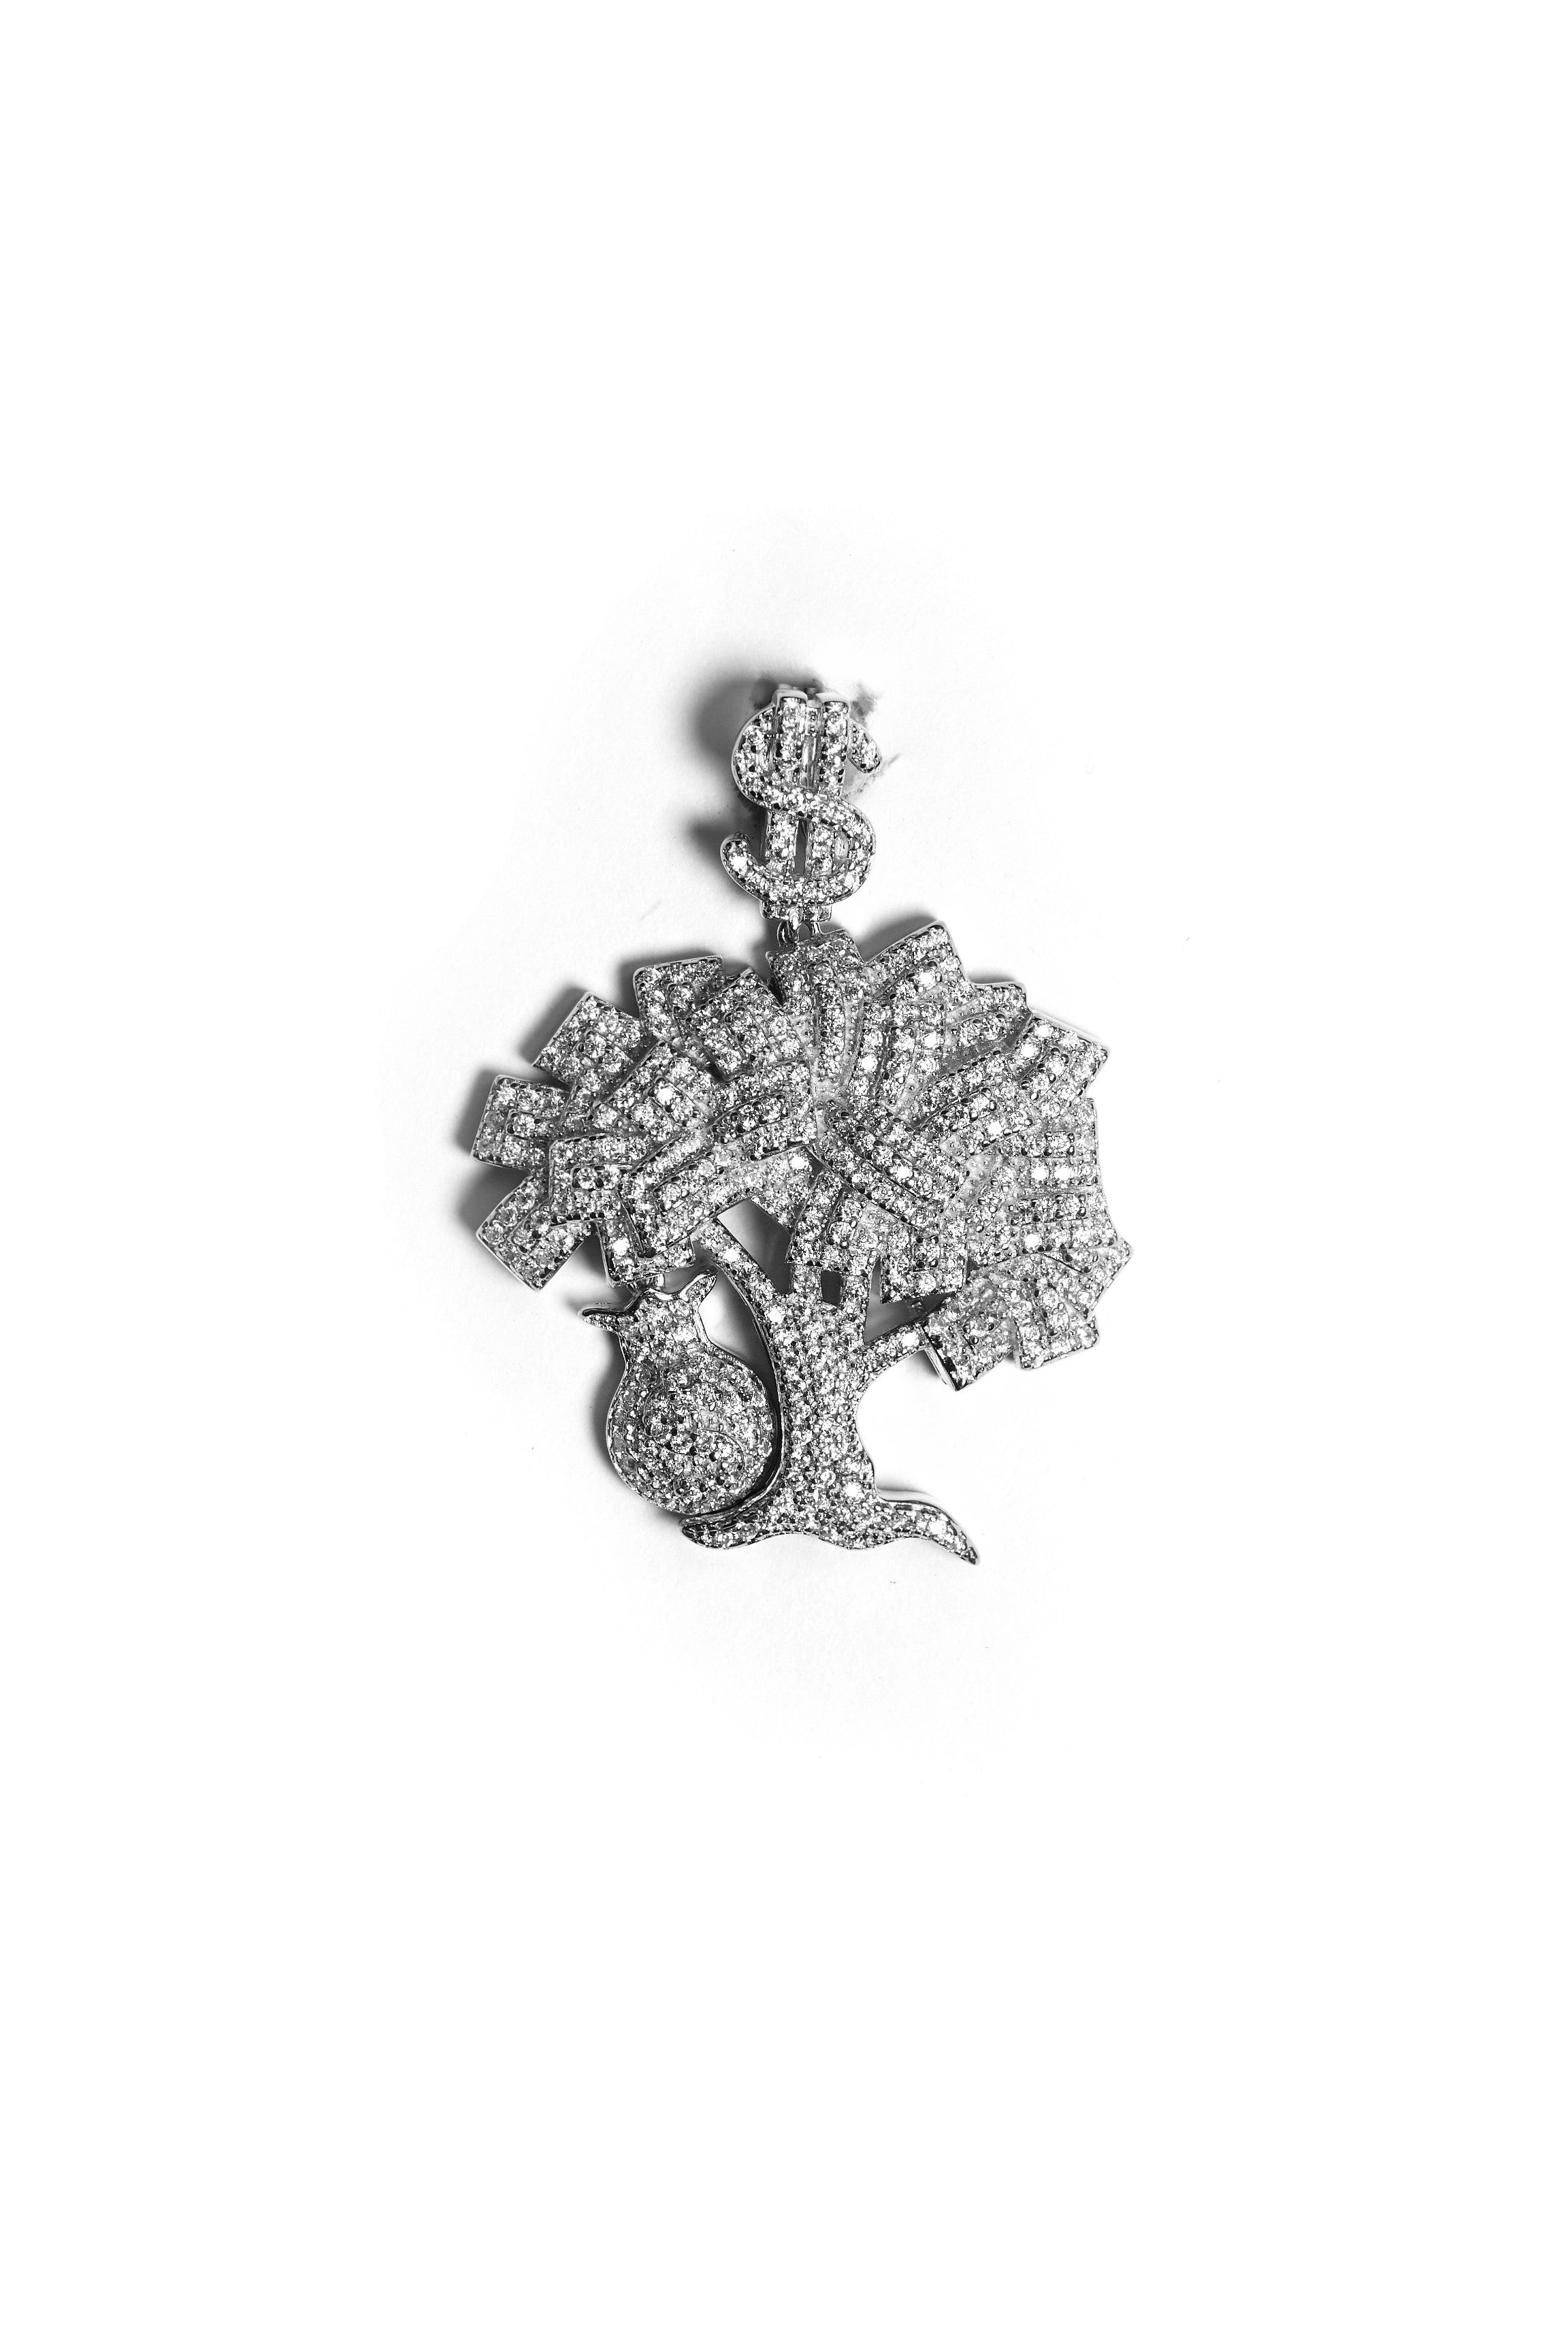 MONEY TREE SILVER PENDANT